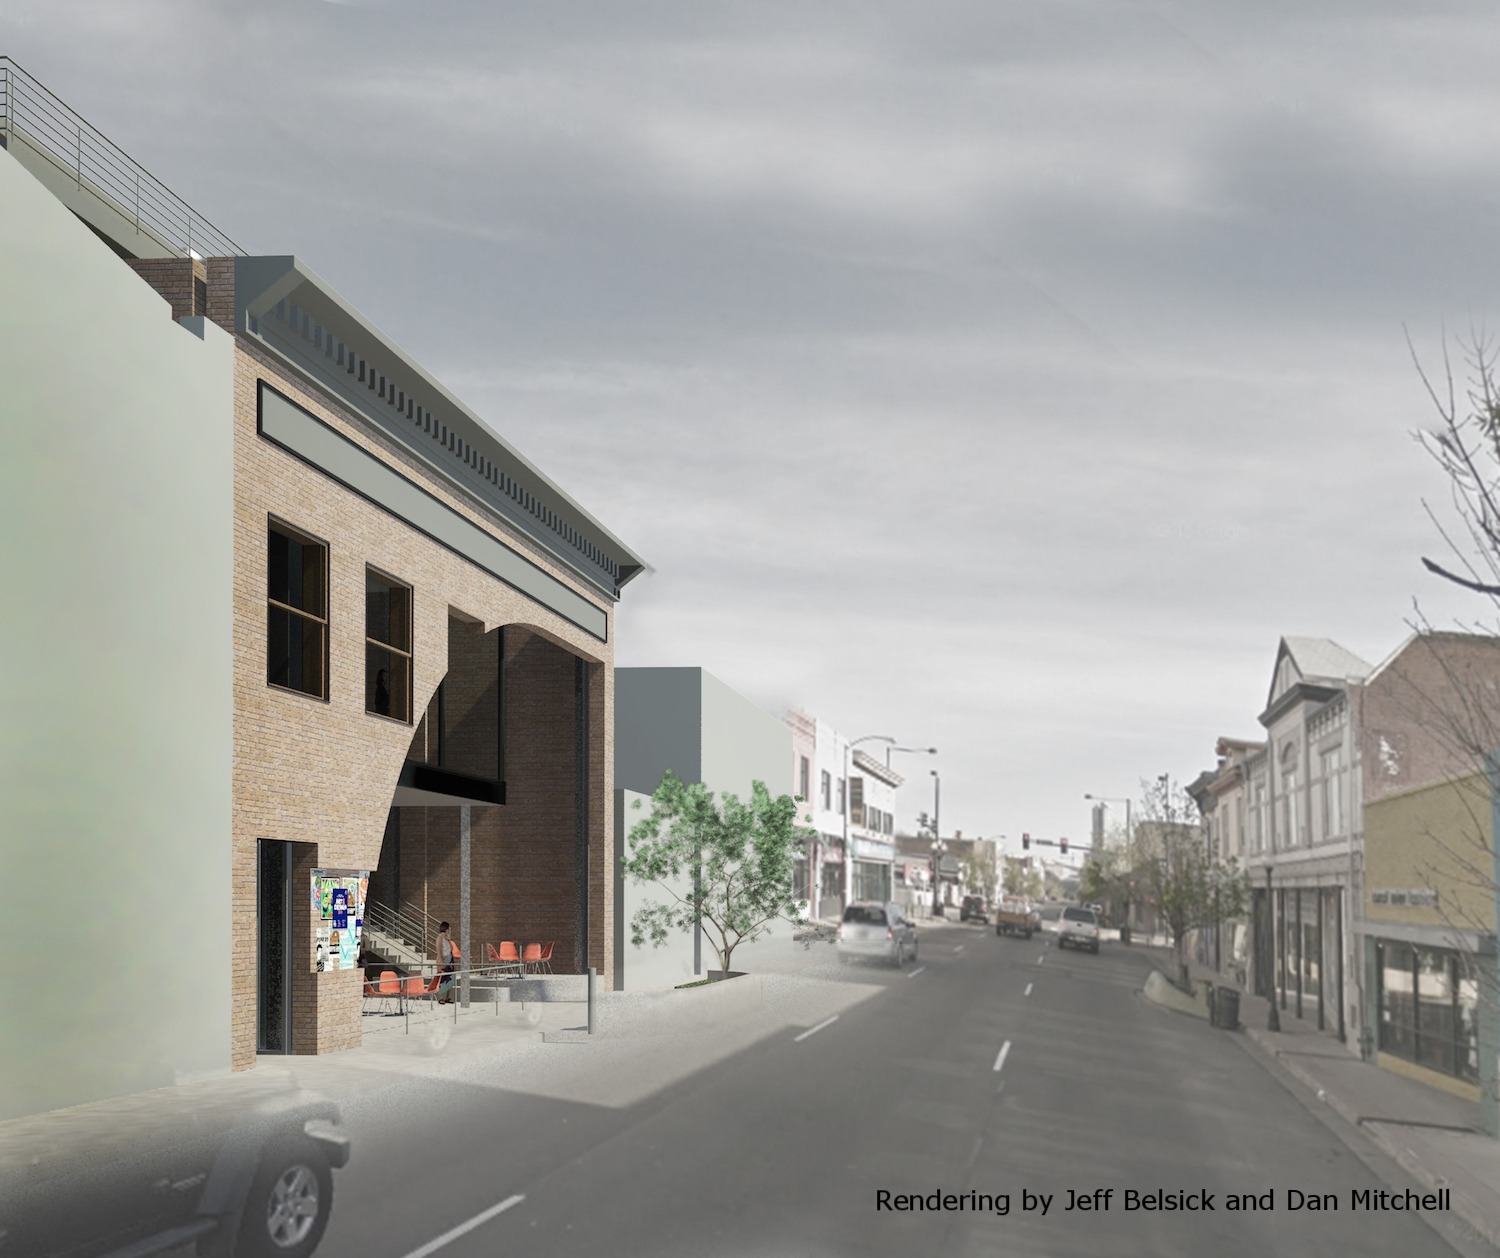 Rendering by Jeff Belsick and Dan Mitchell